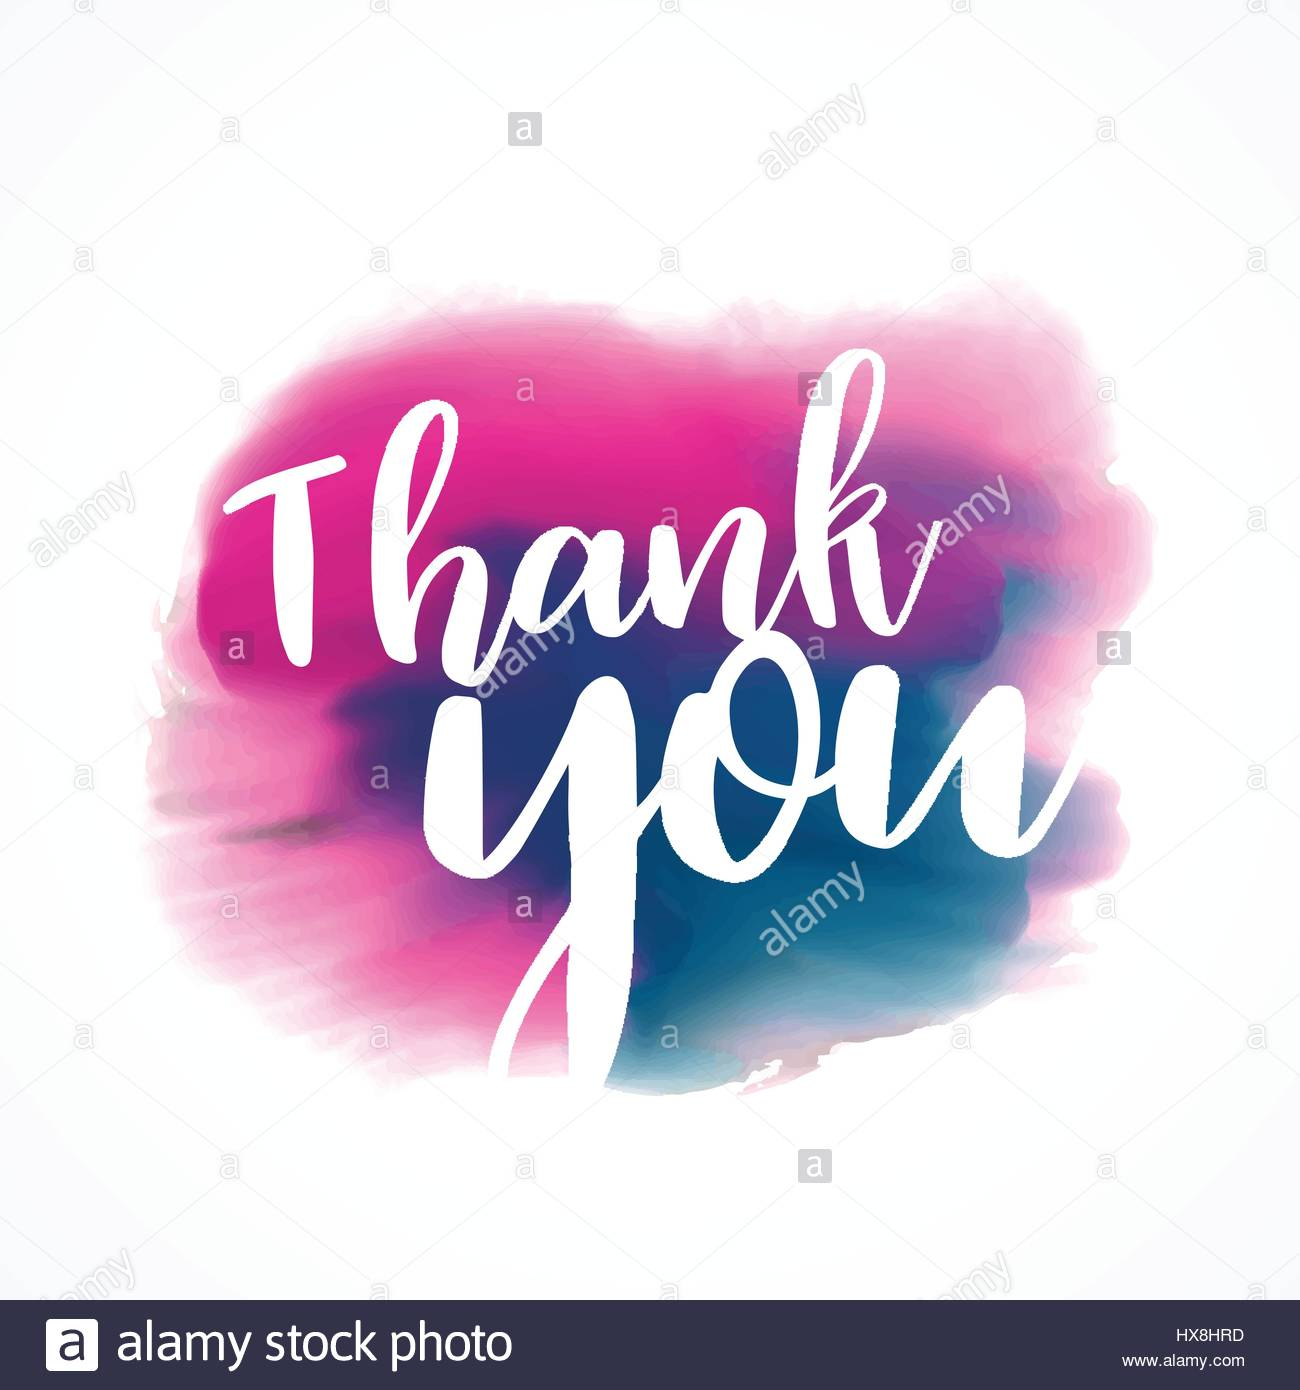 Expression Of Words Written In Ink: Thank You Written On Hand Painted Red And Blue Ink Stroke